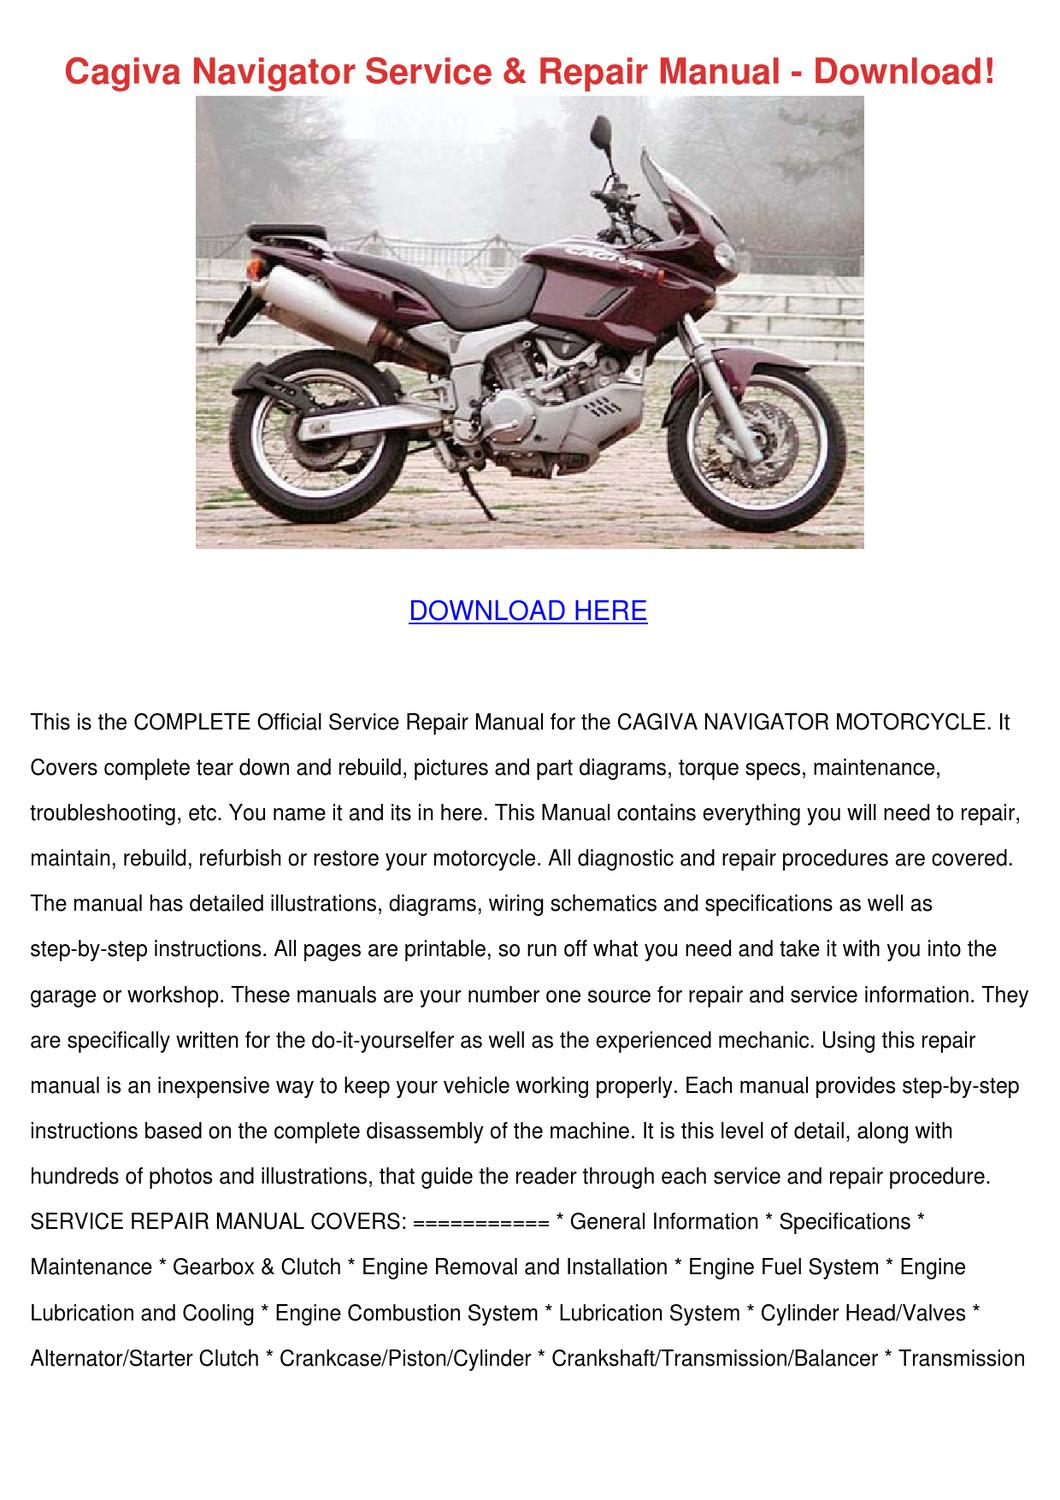 Cagiva Navigator Service Repair Manual Downlo by JefferyGoodrich issuu